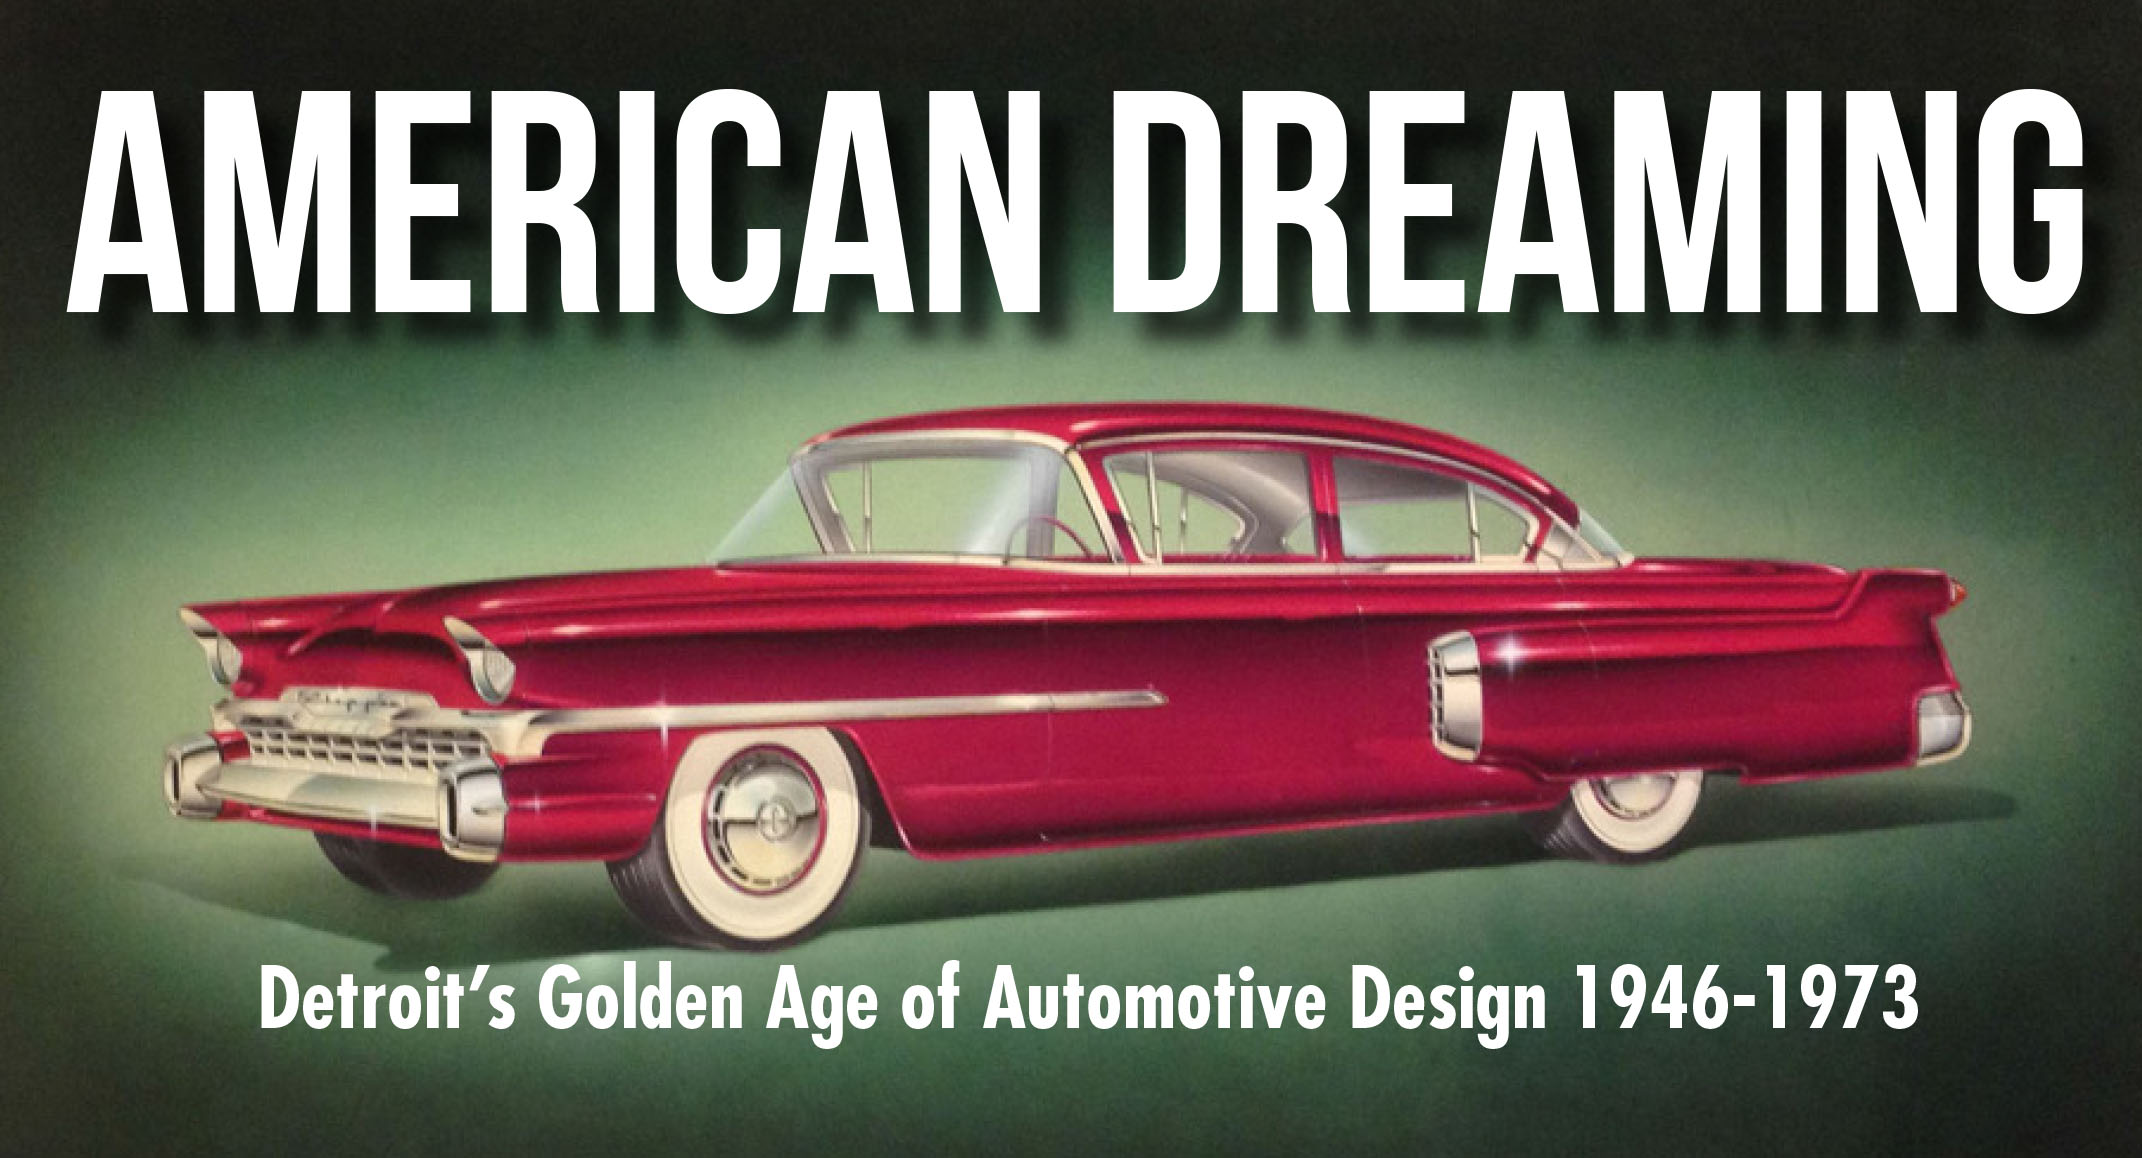 Artist Bill Brownlie of Briggs Design proposed this new body theme for the Packard Clipper, but it was never used. Chrysler acquired Briggs Design in 1953, and Brownlie worked on many of the iconic Chrysler models in the 1950s and 1960s.